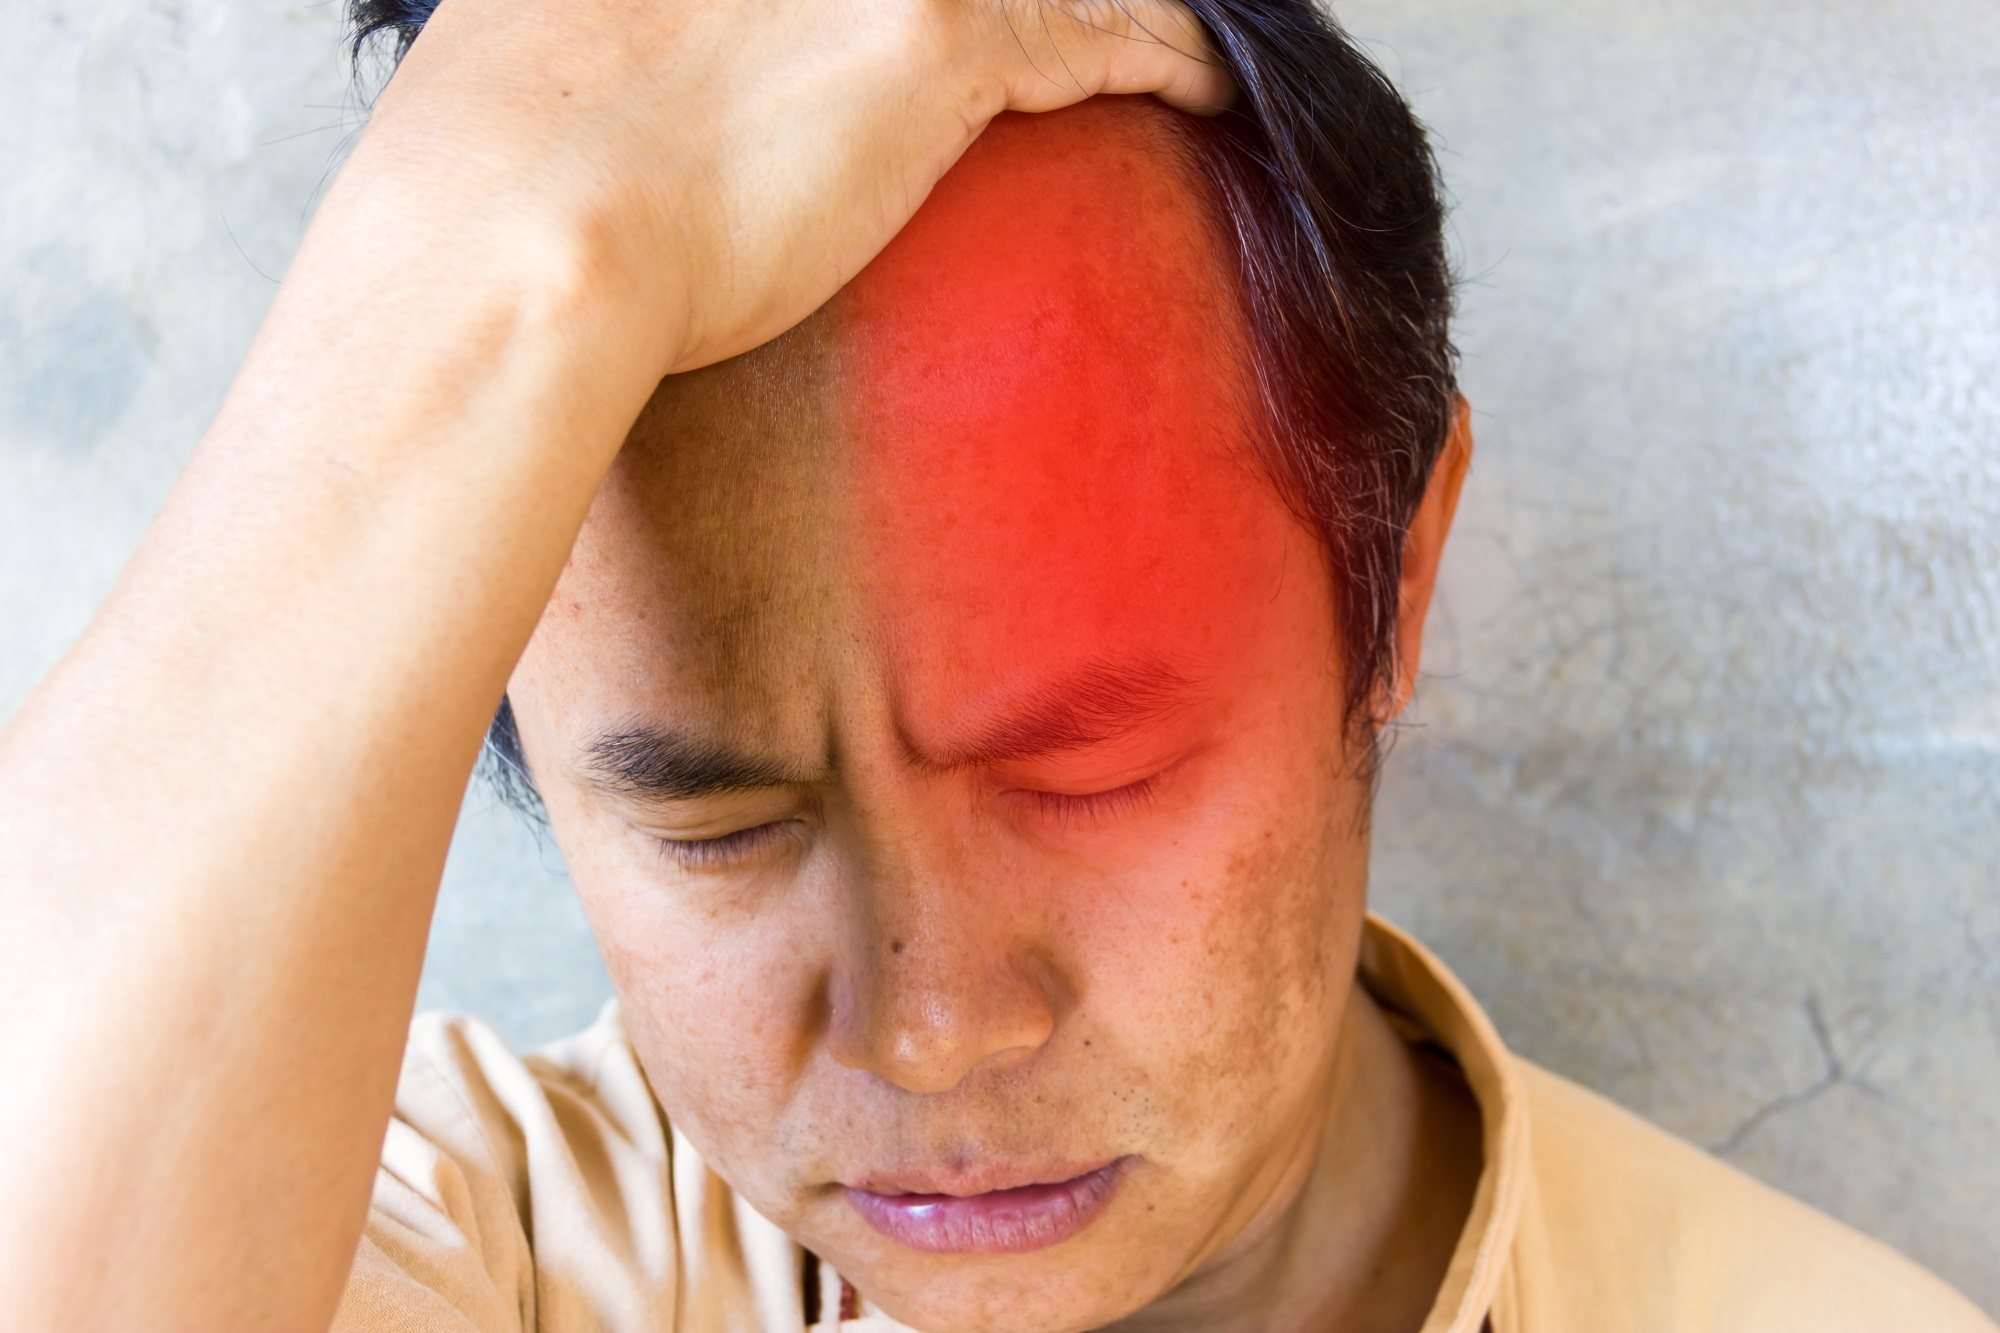 Clinical Characteristics of Cluster Headache Attacks Vary Considerably - Clinical Pain Advisor